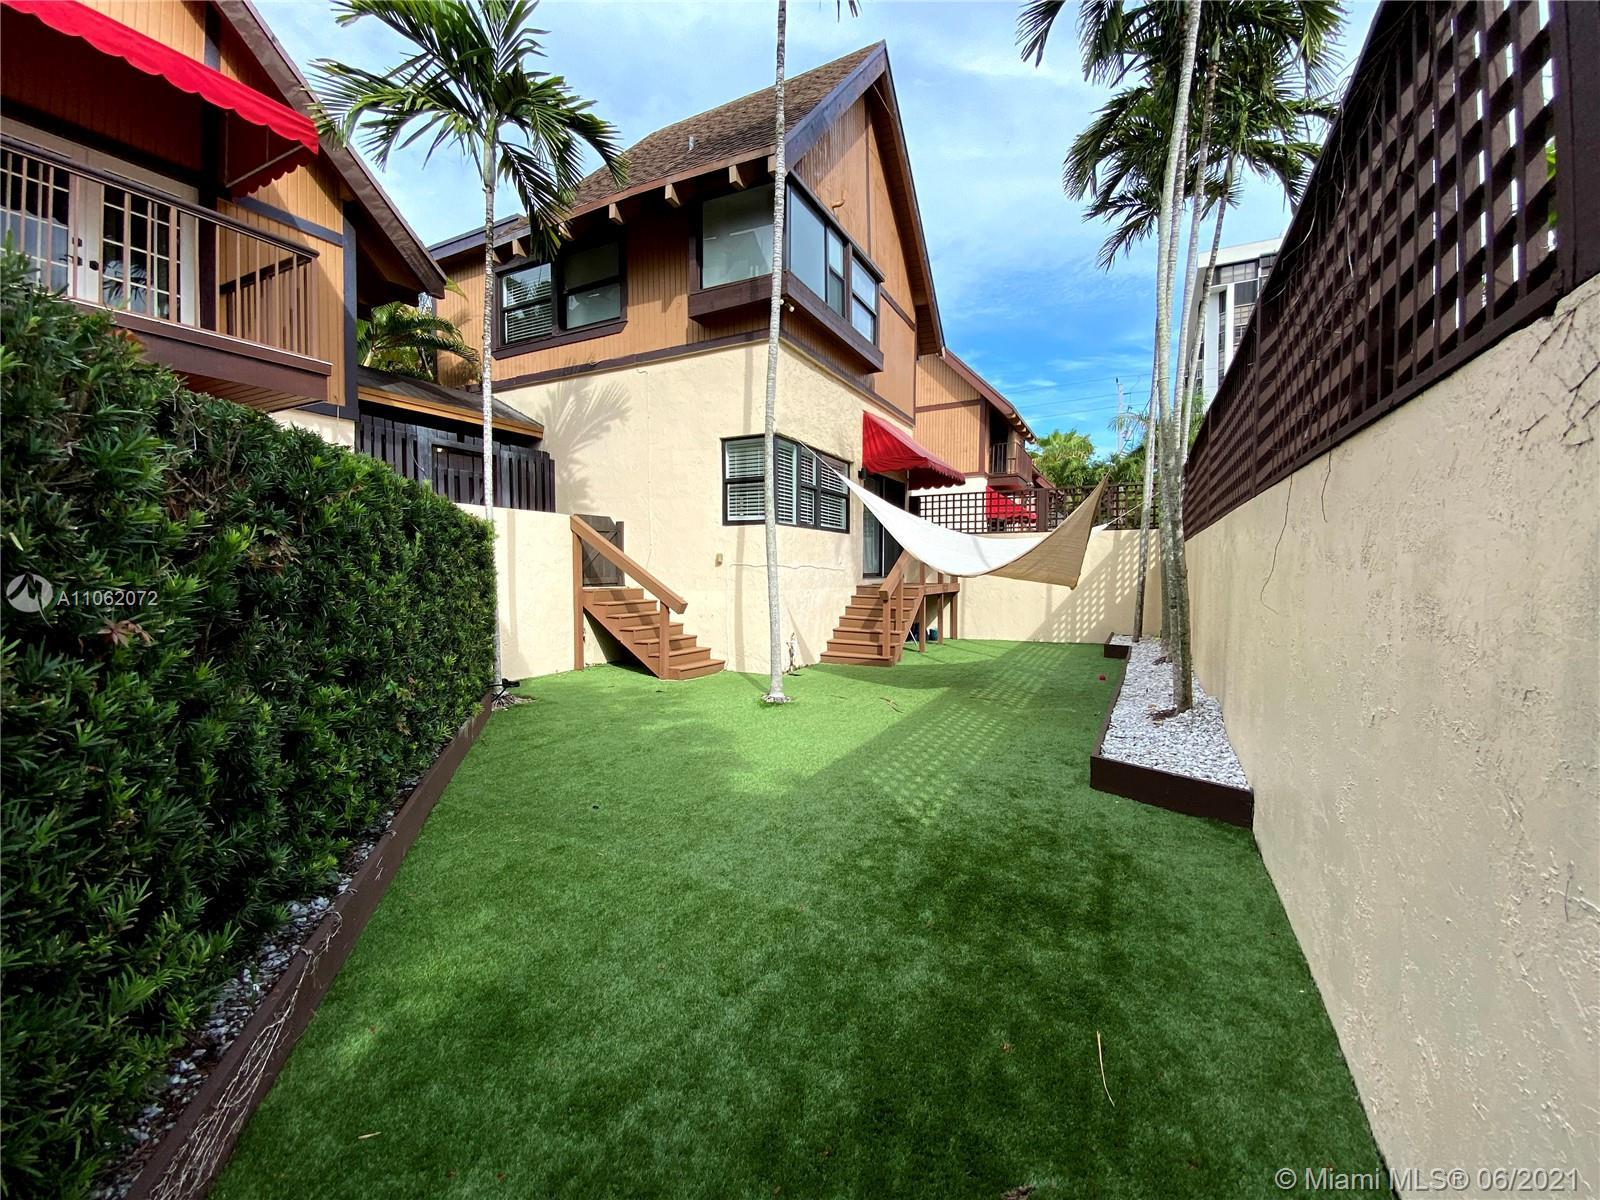 Brickell Ave. Stand alone Townhouse, no share walls with other units. Less than 3 year old new roof,